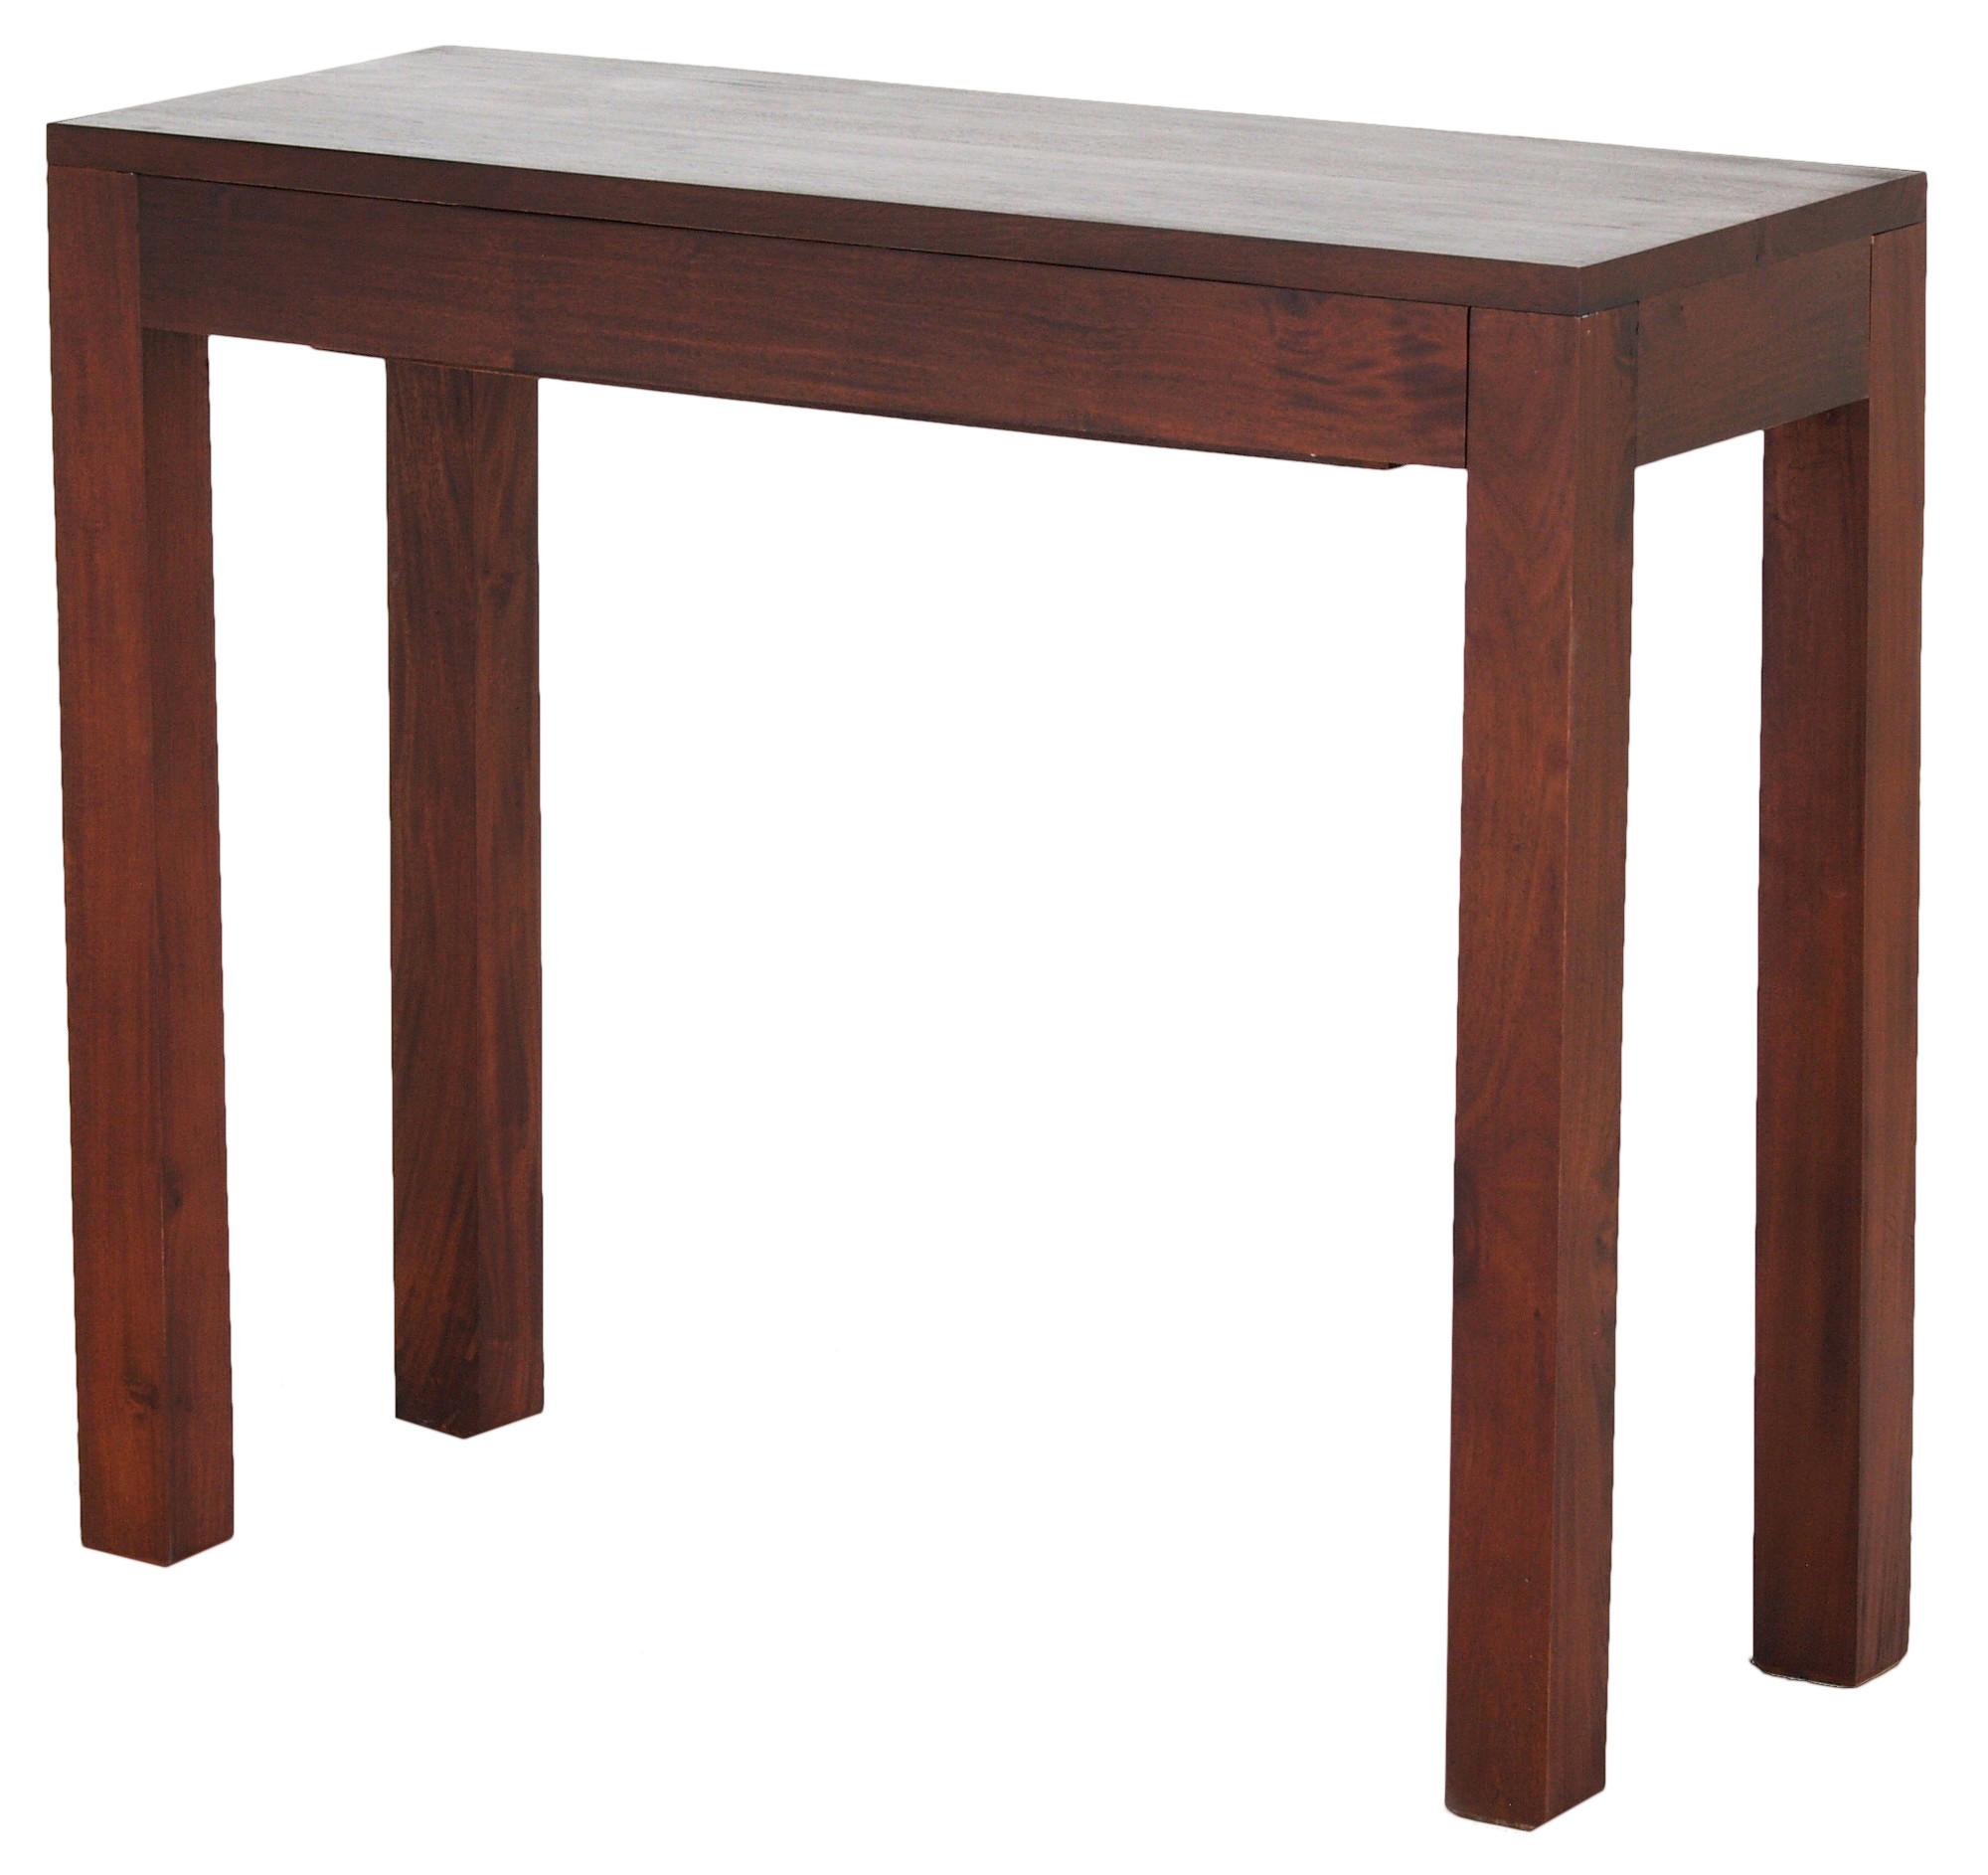 Chinese console table sydney dining table chinese oak 2m for Coffee tables brisbane qld